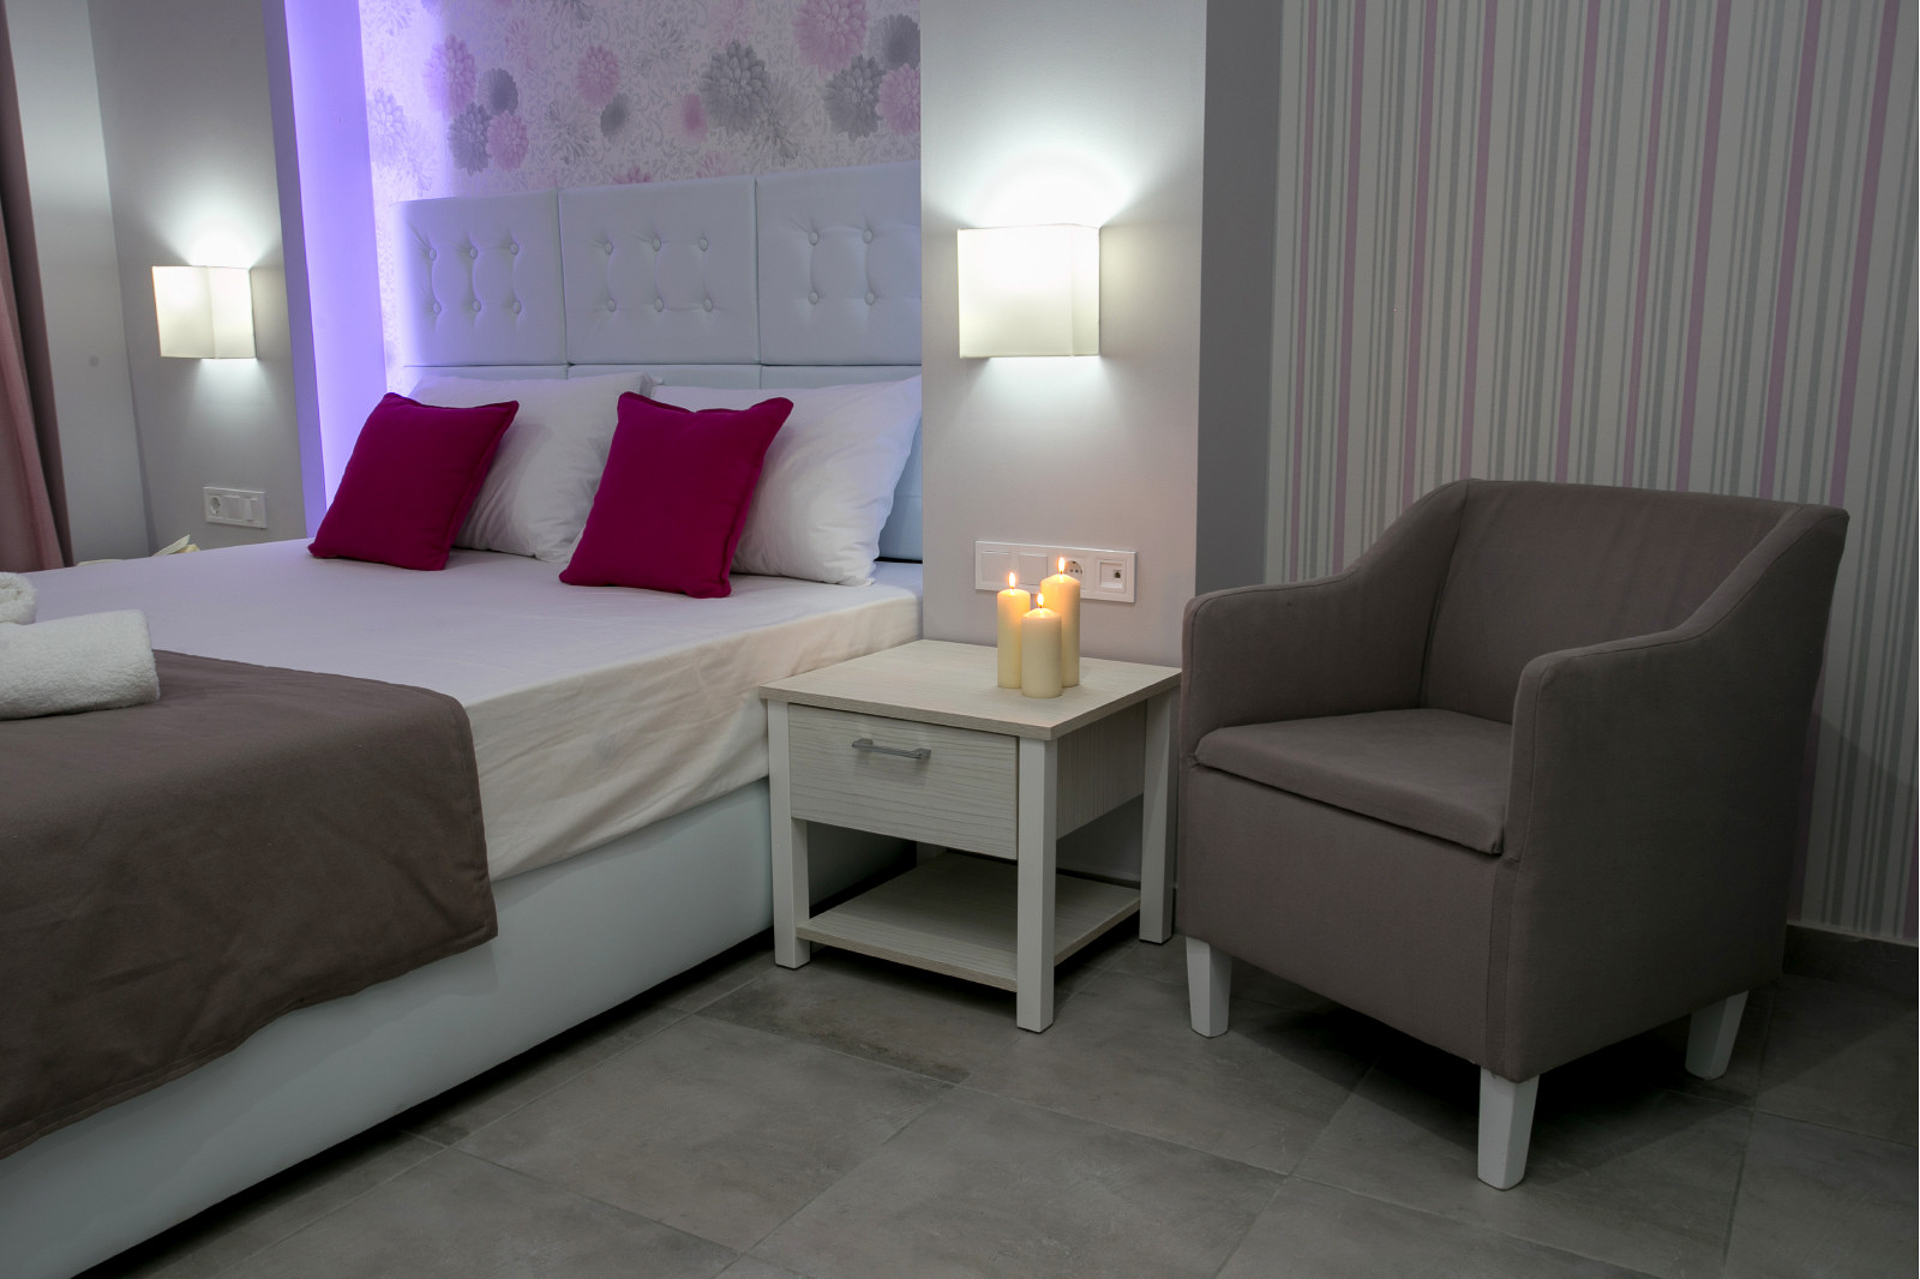 la feyra luxury rooms limenaria thassos amethyst room 4